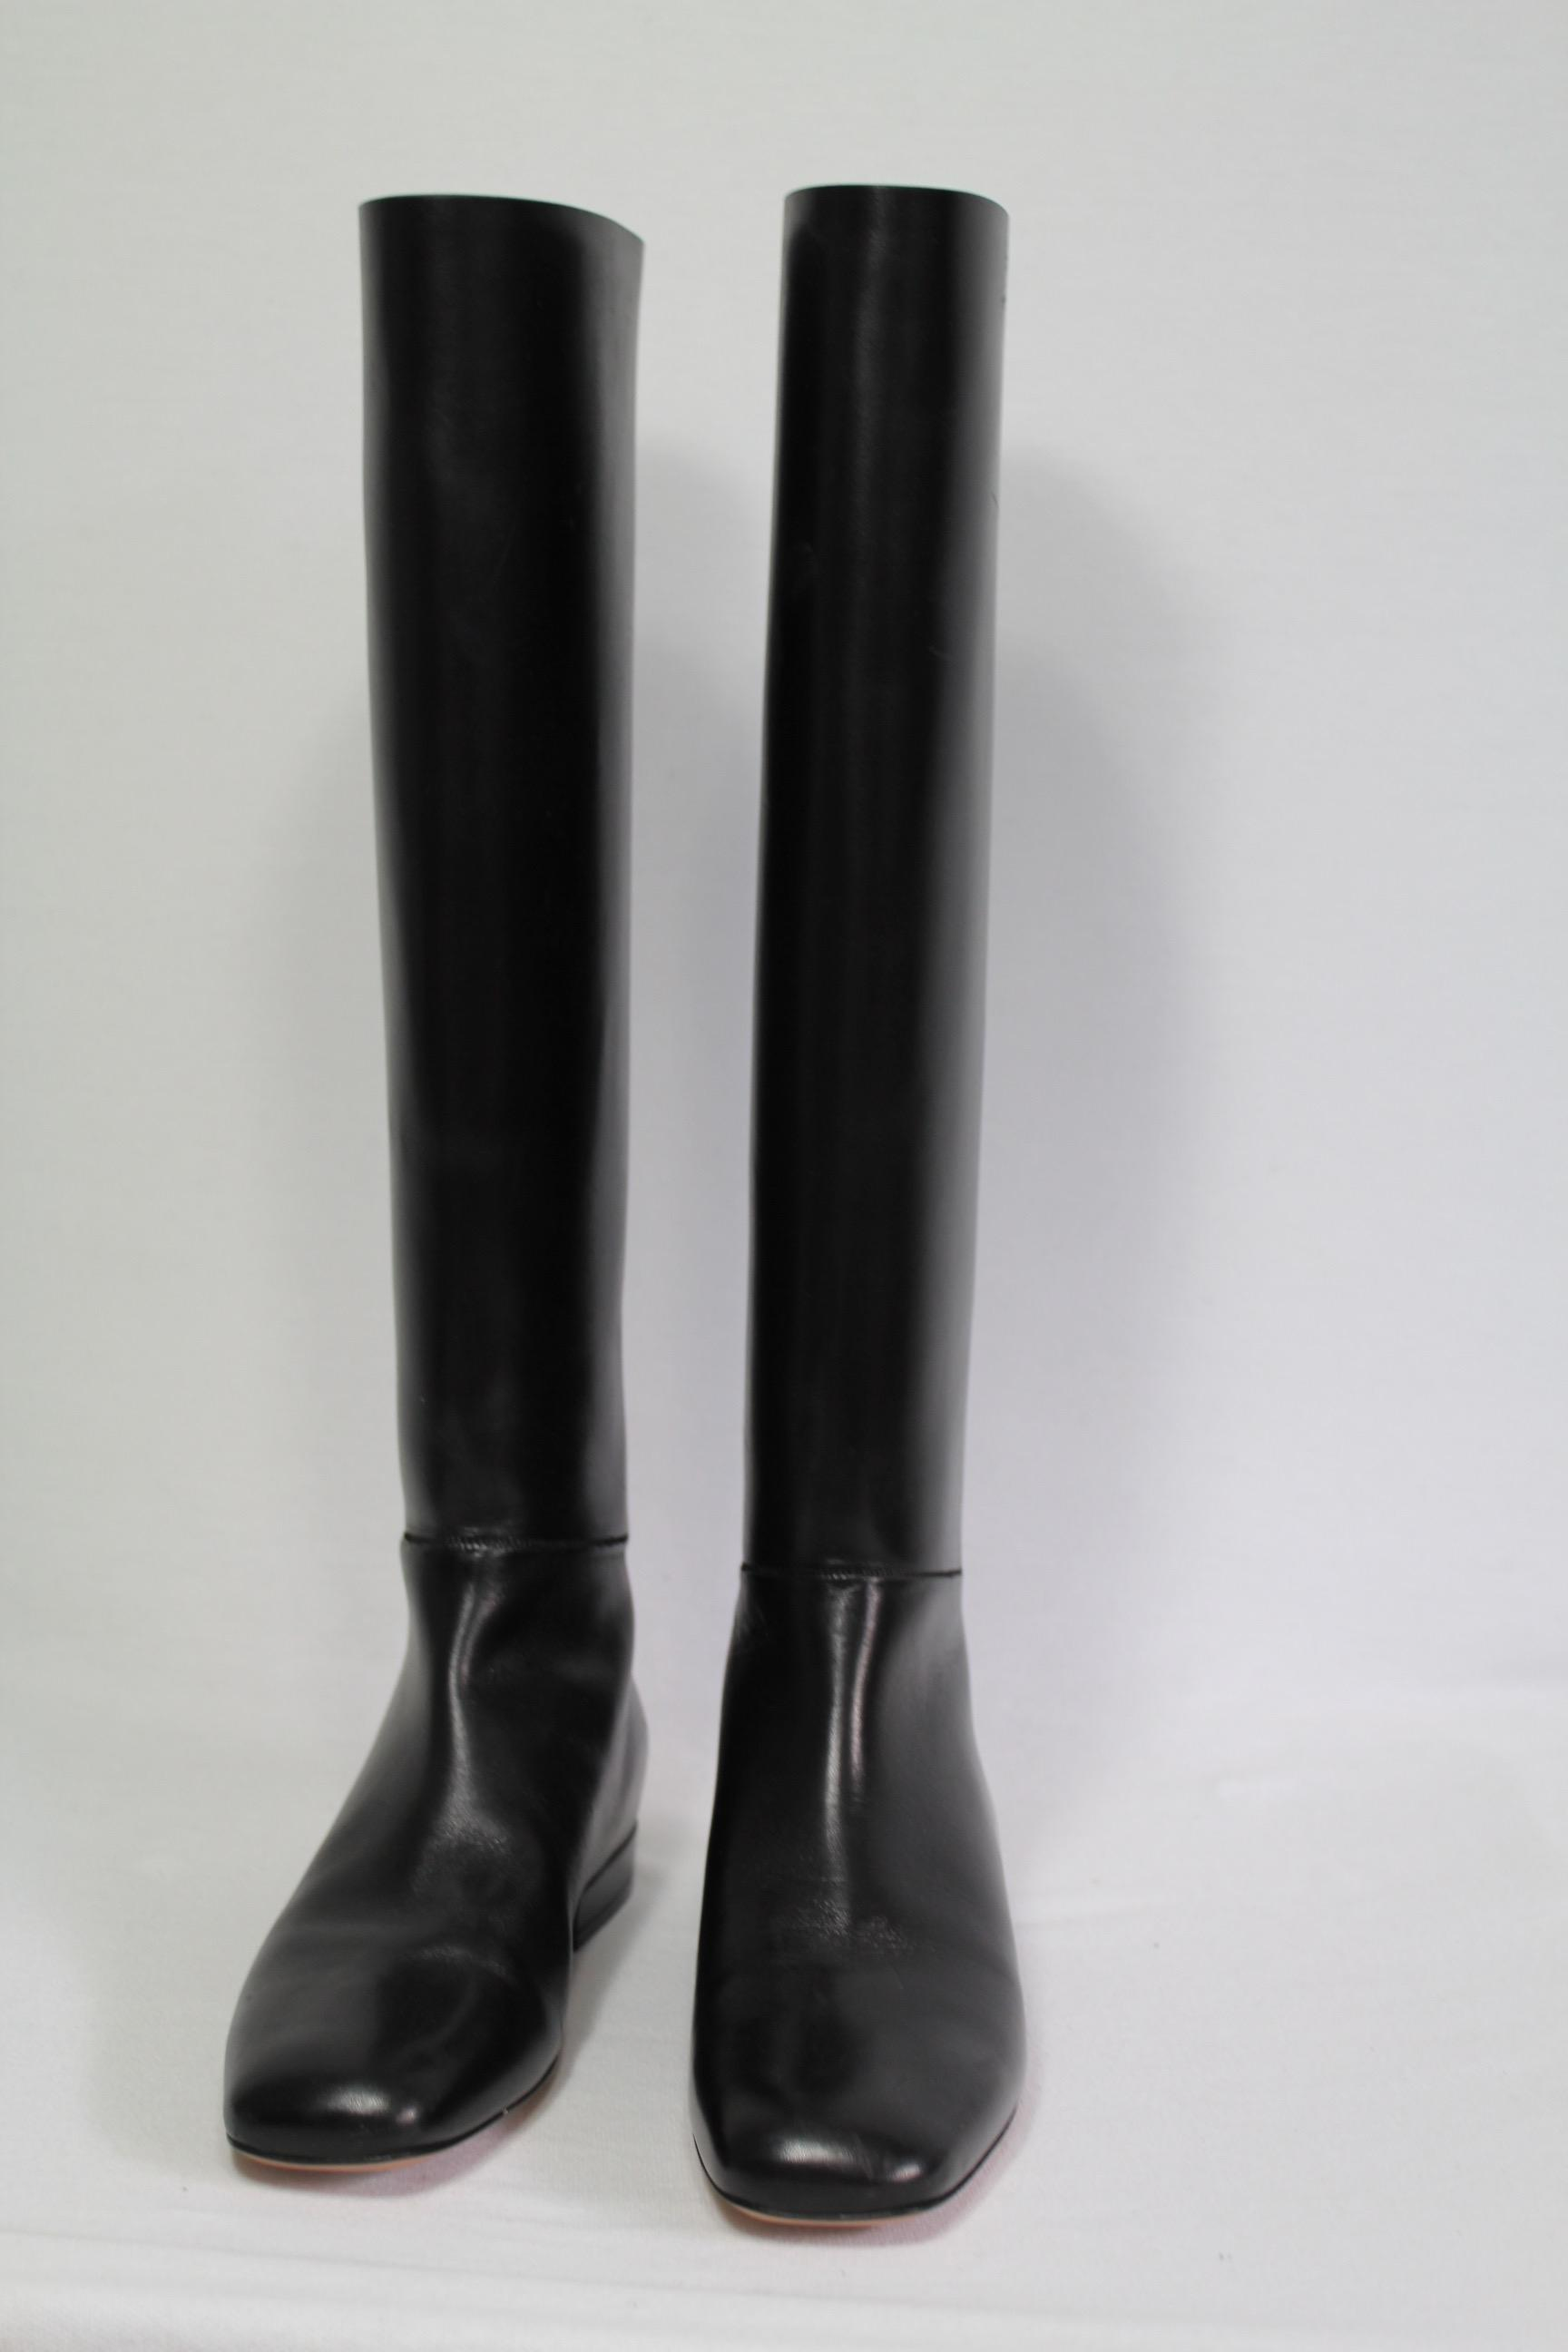 Céline Knee-High Leather Boots buy cheap order ebay sale online collections cheap price best place to buy online ytJZUEH3